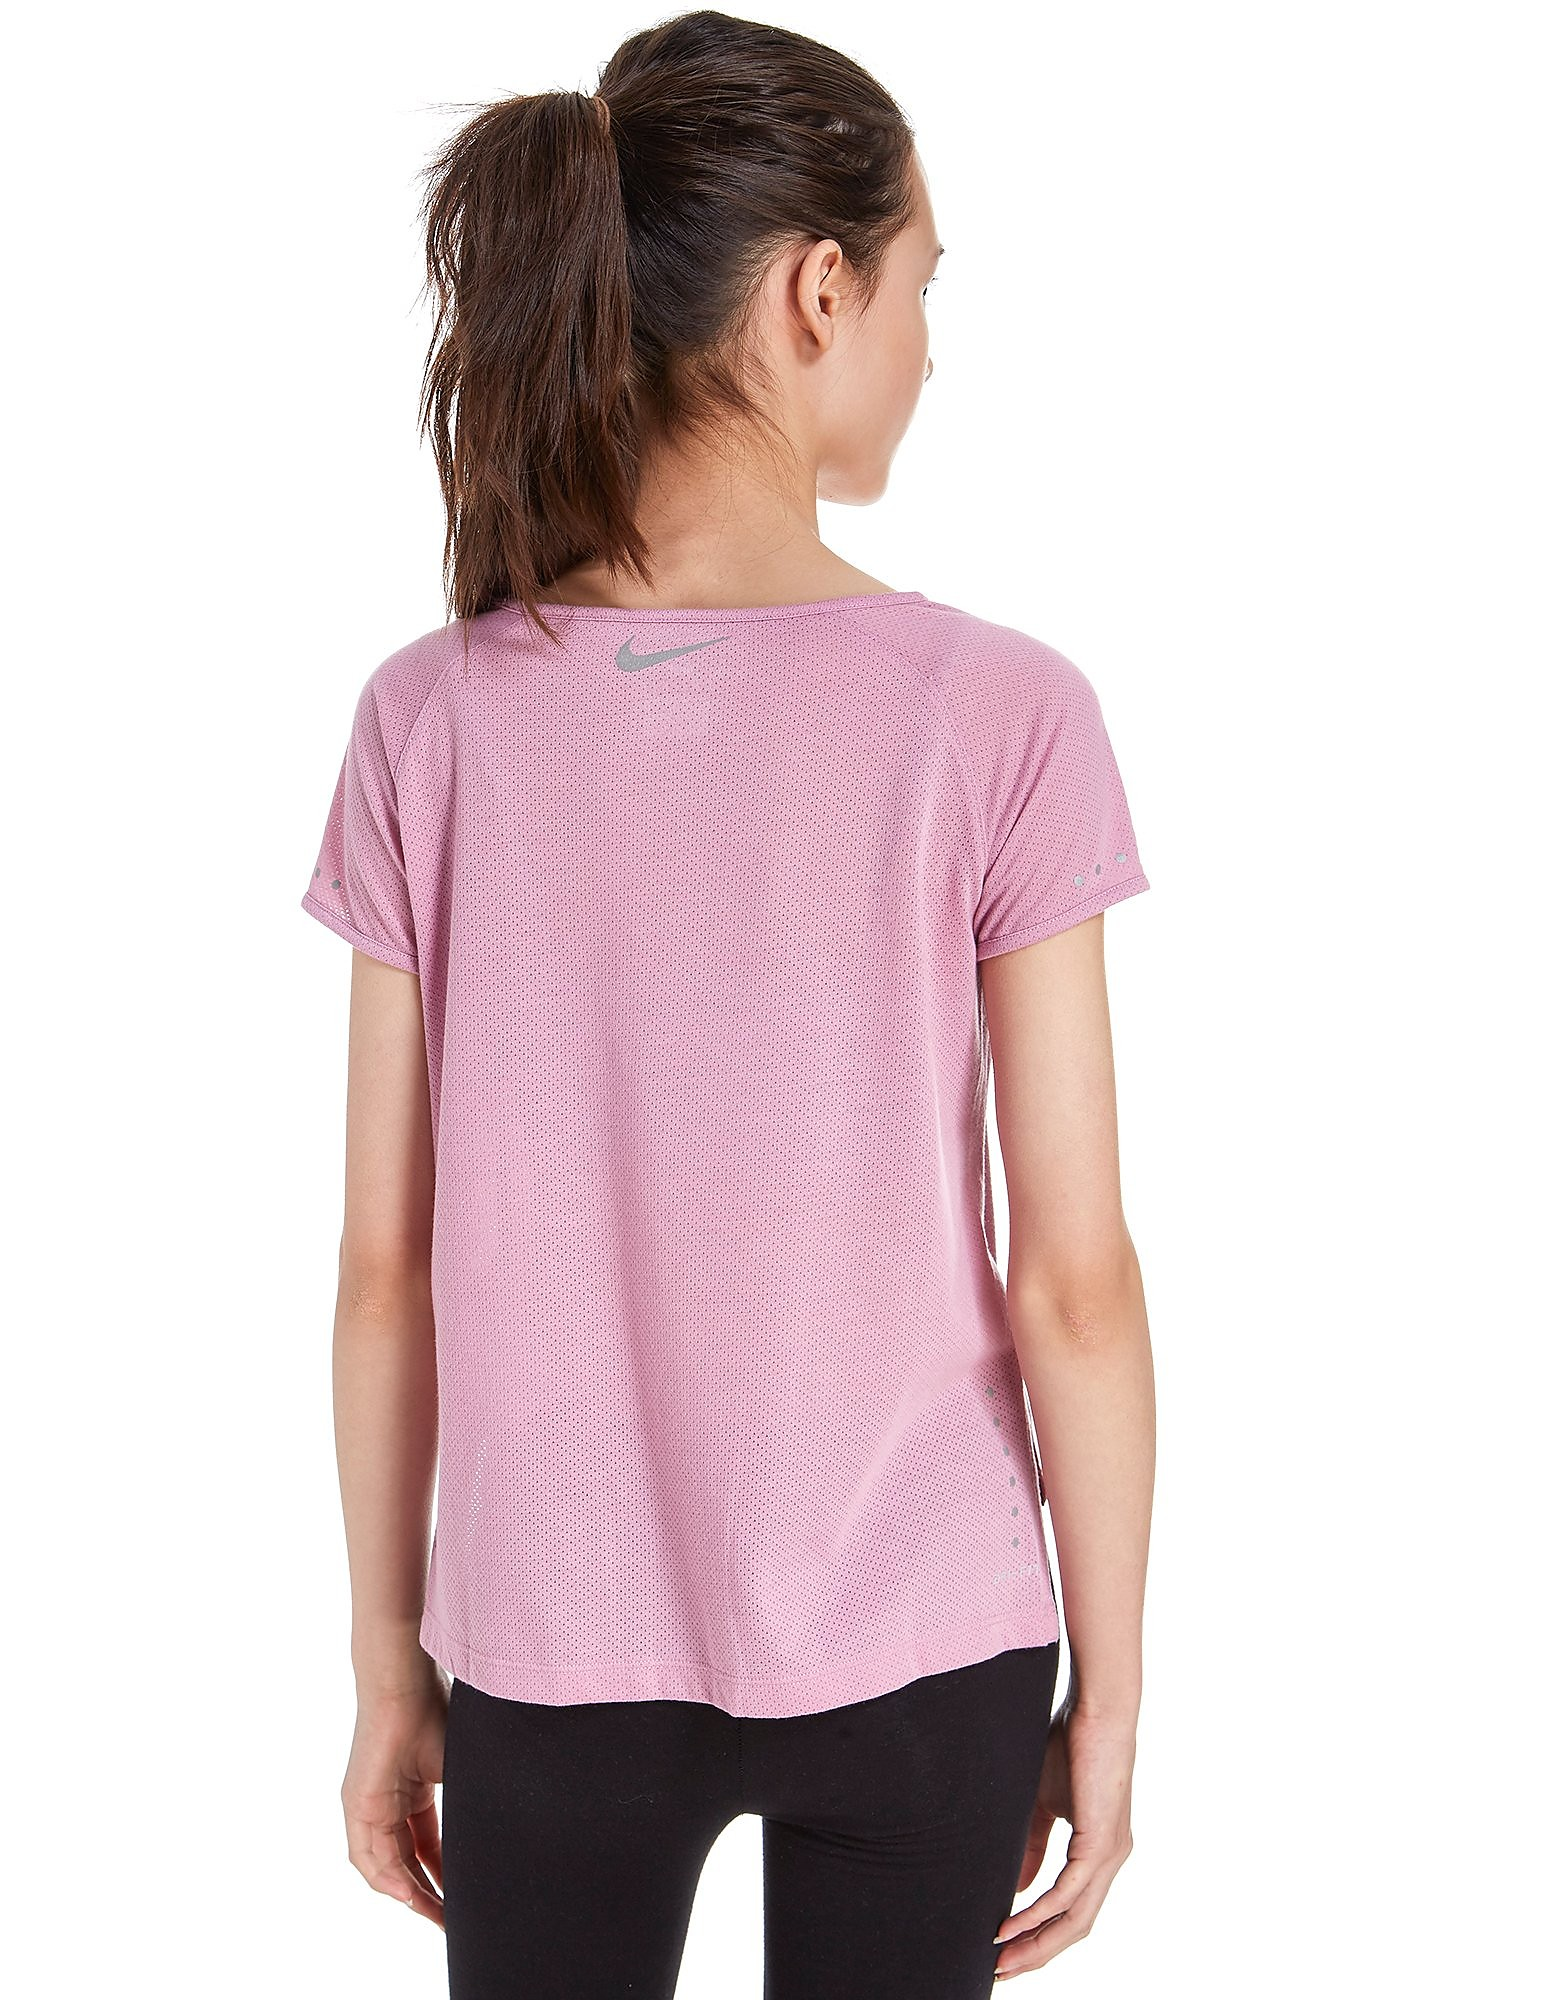 Nike T-shirt City Breathe Ragazza